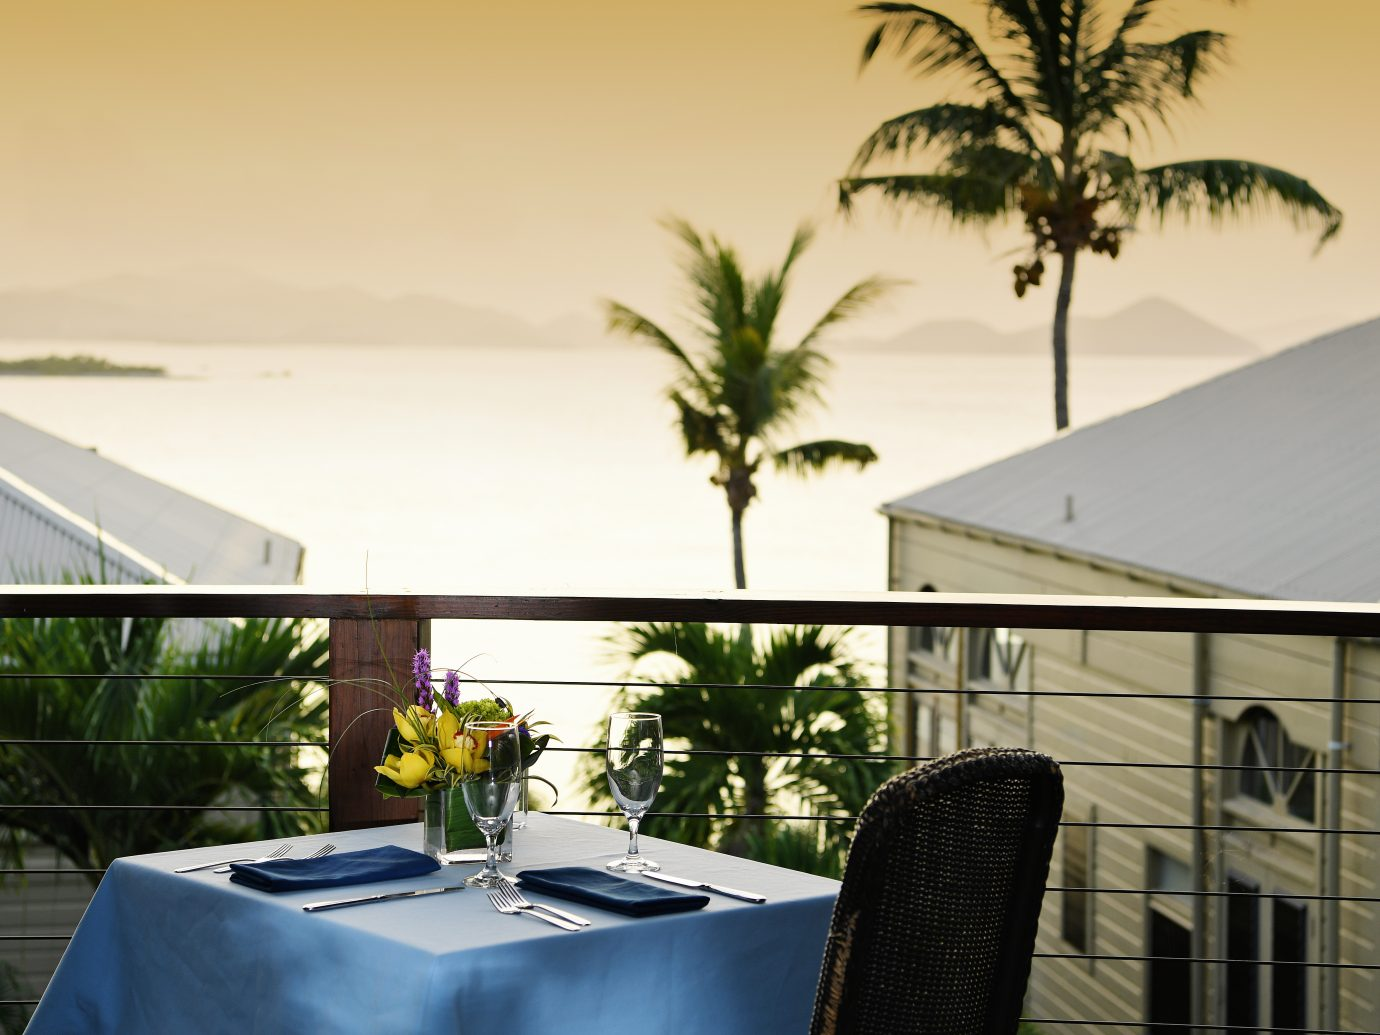 outdoor terrace eating looking at tropical scenery